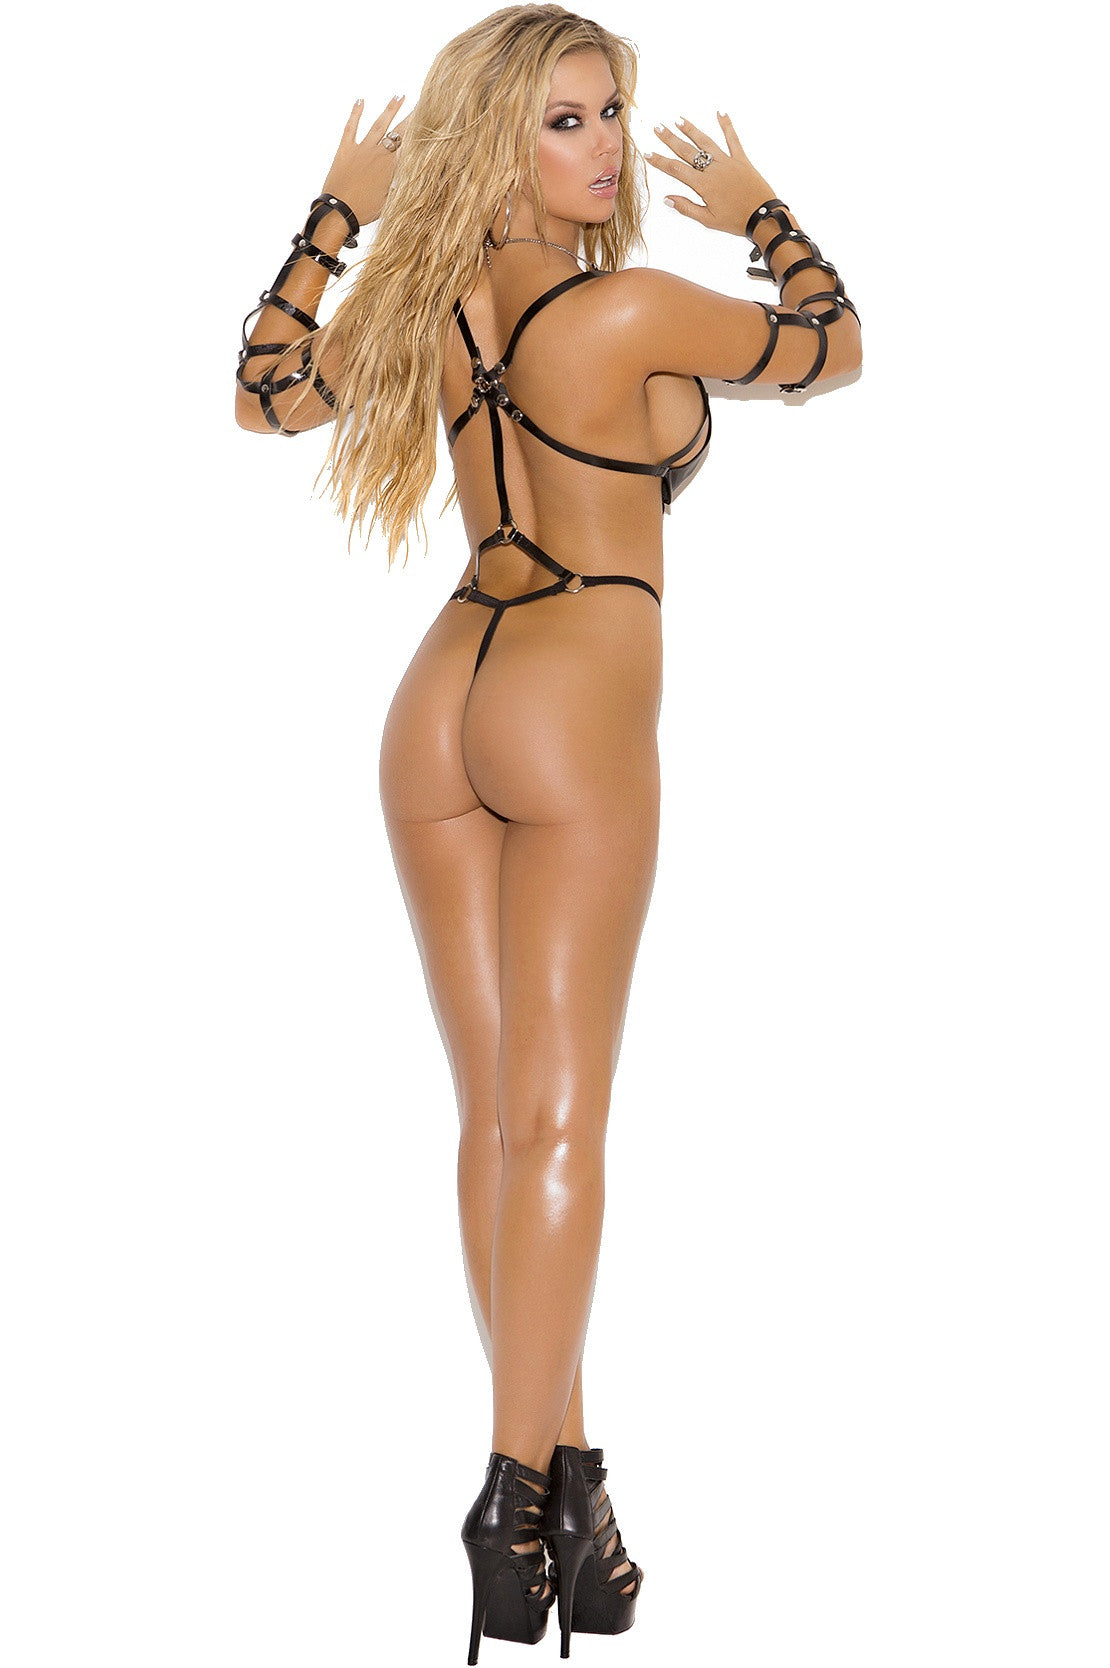 L2248 Leather & vinyl teddy - Sexylingerieland  - 2